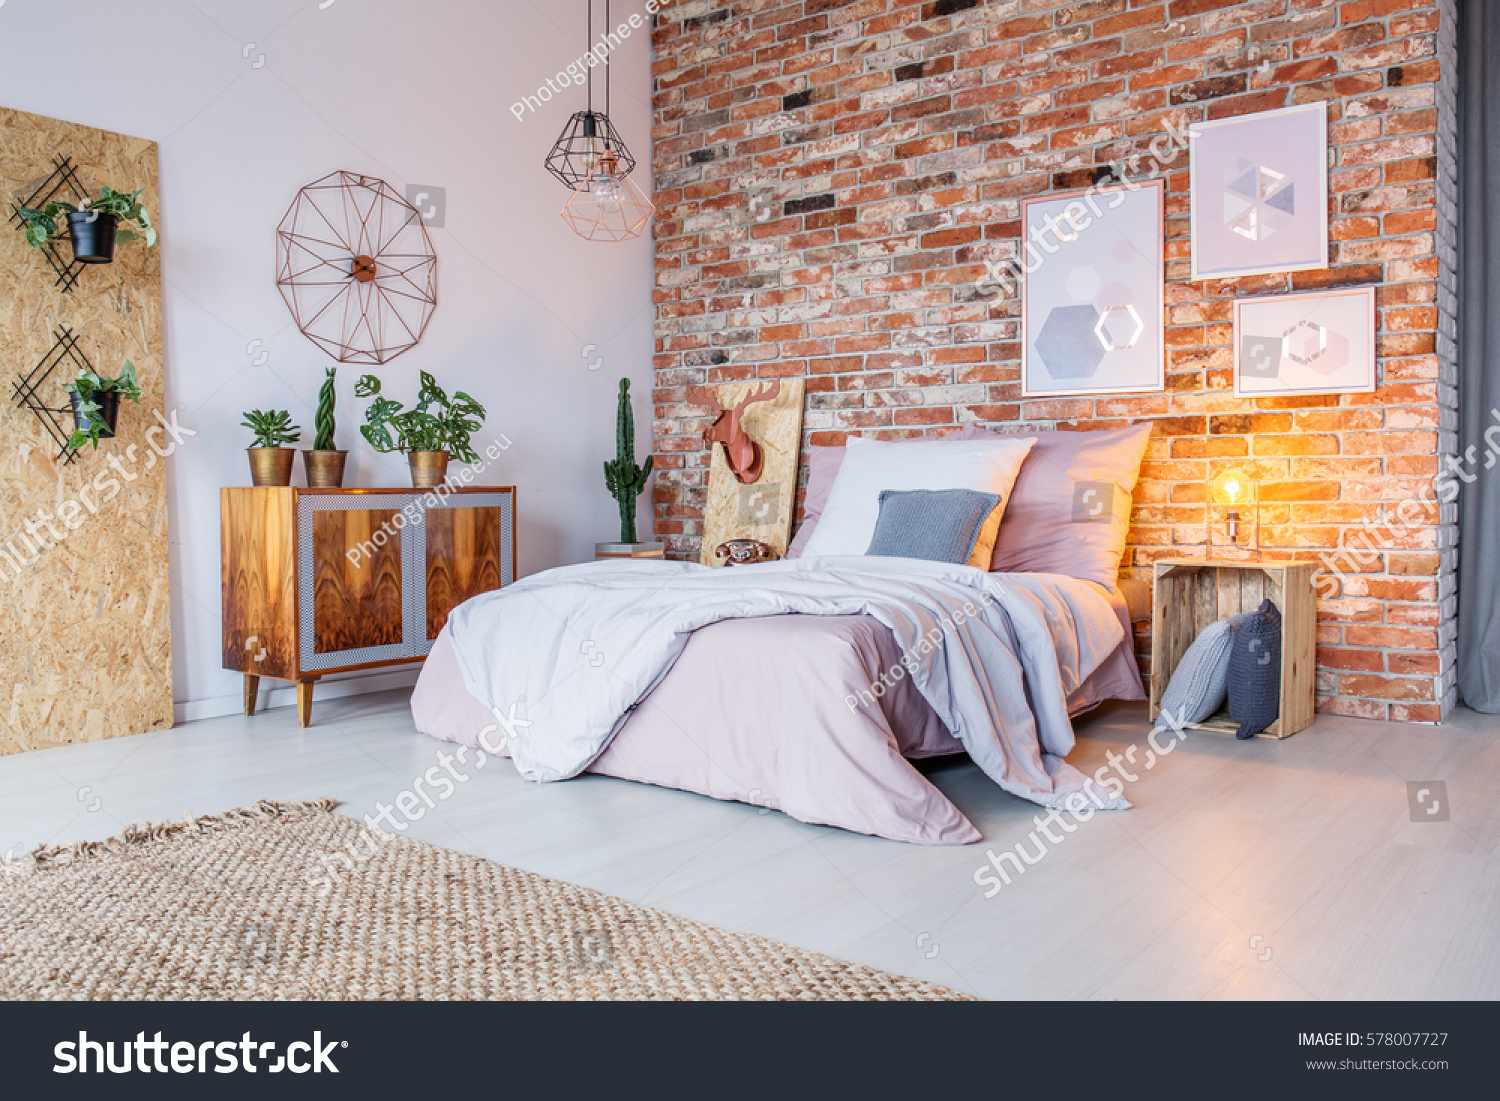 Bright bedroom with double bed  brick wall and rug. Bright Bedroom Double Bed Brick Wall Stock Photo 578007727